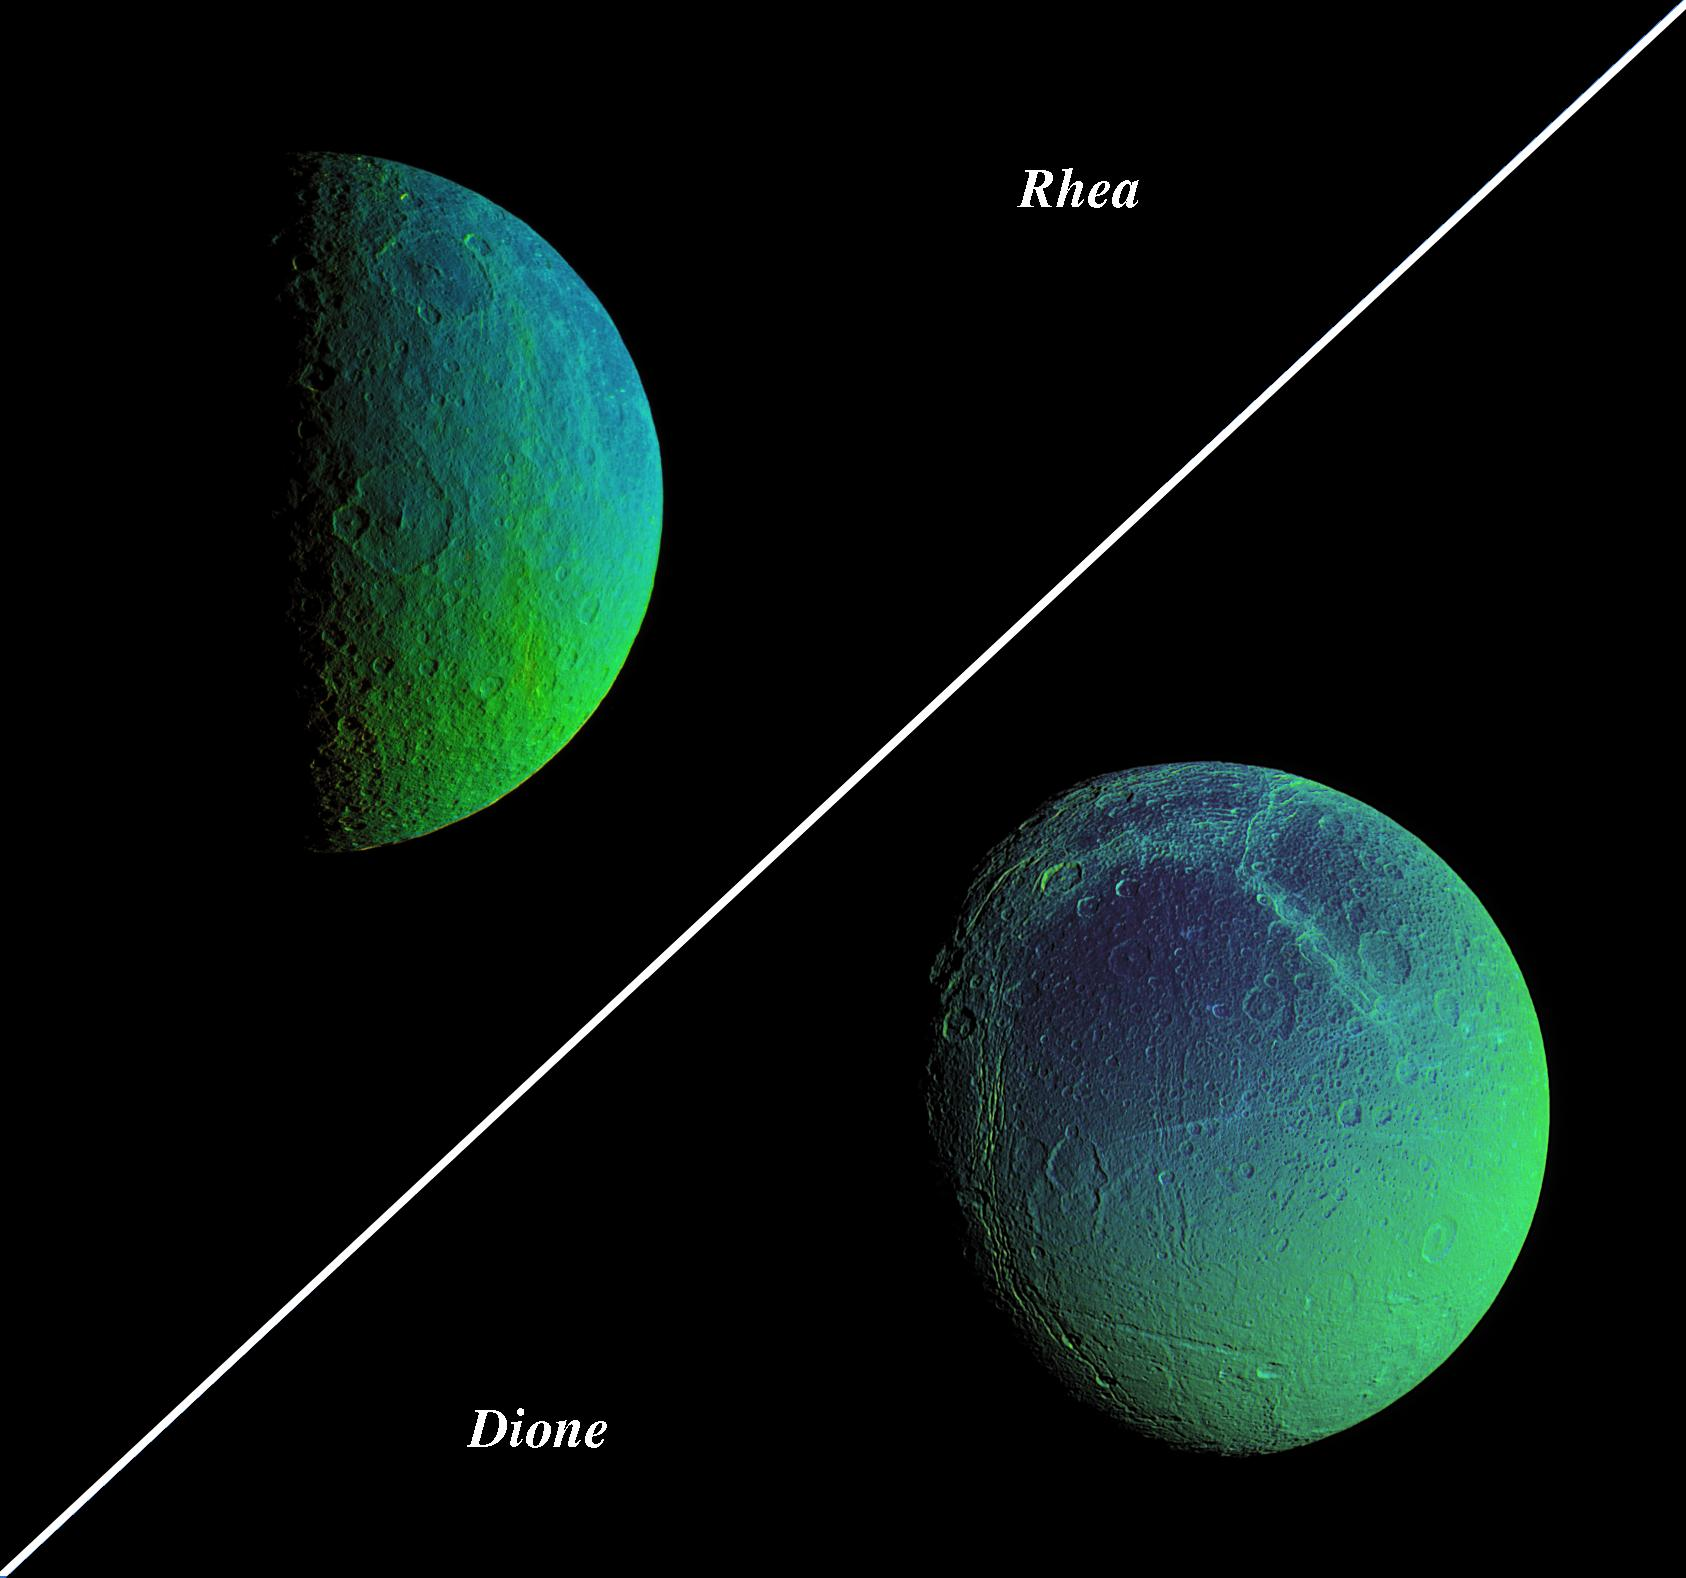 Combination of two views of Saturn's moons Rhea and Dione